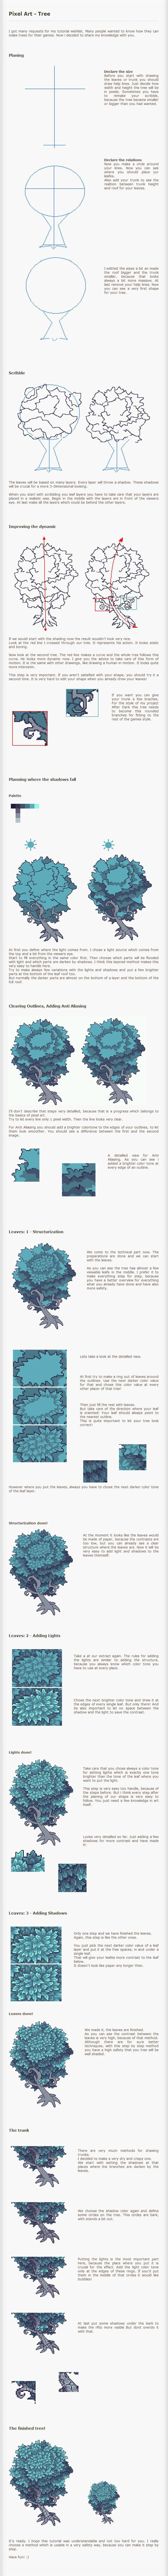 Pixel Art How to Create a Tree